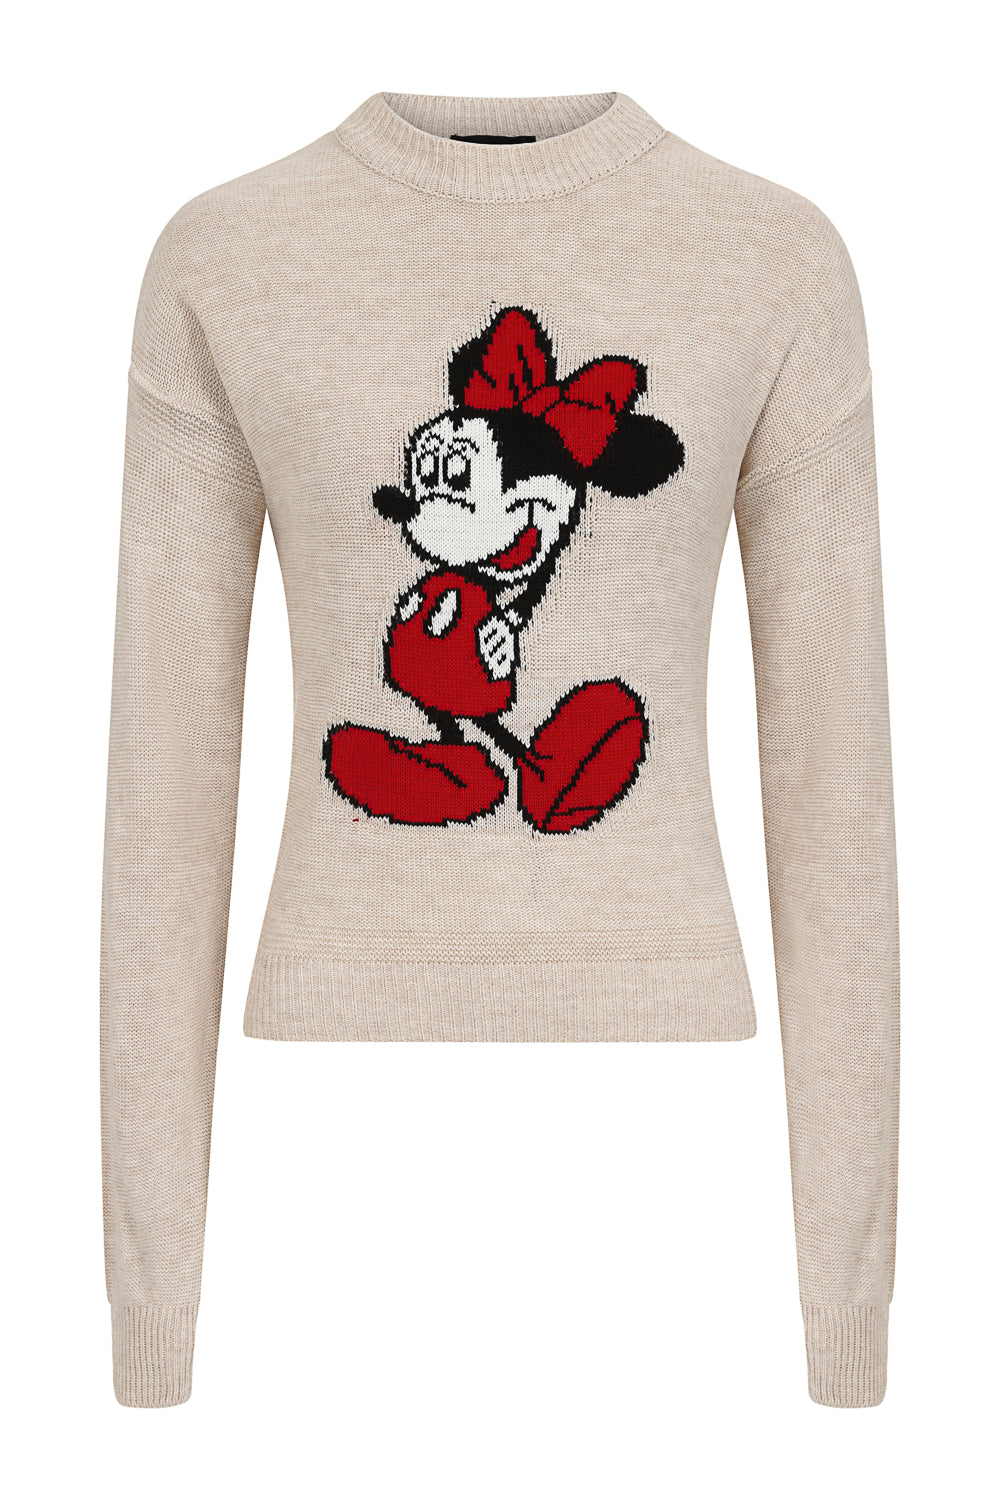 Minnie Mouse Beige Knit Woven Cartoon Lounge Set